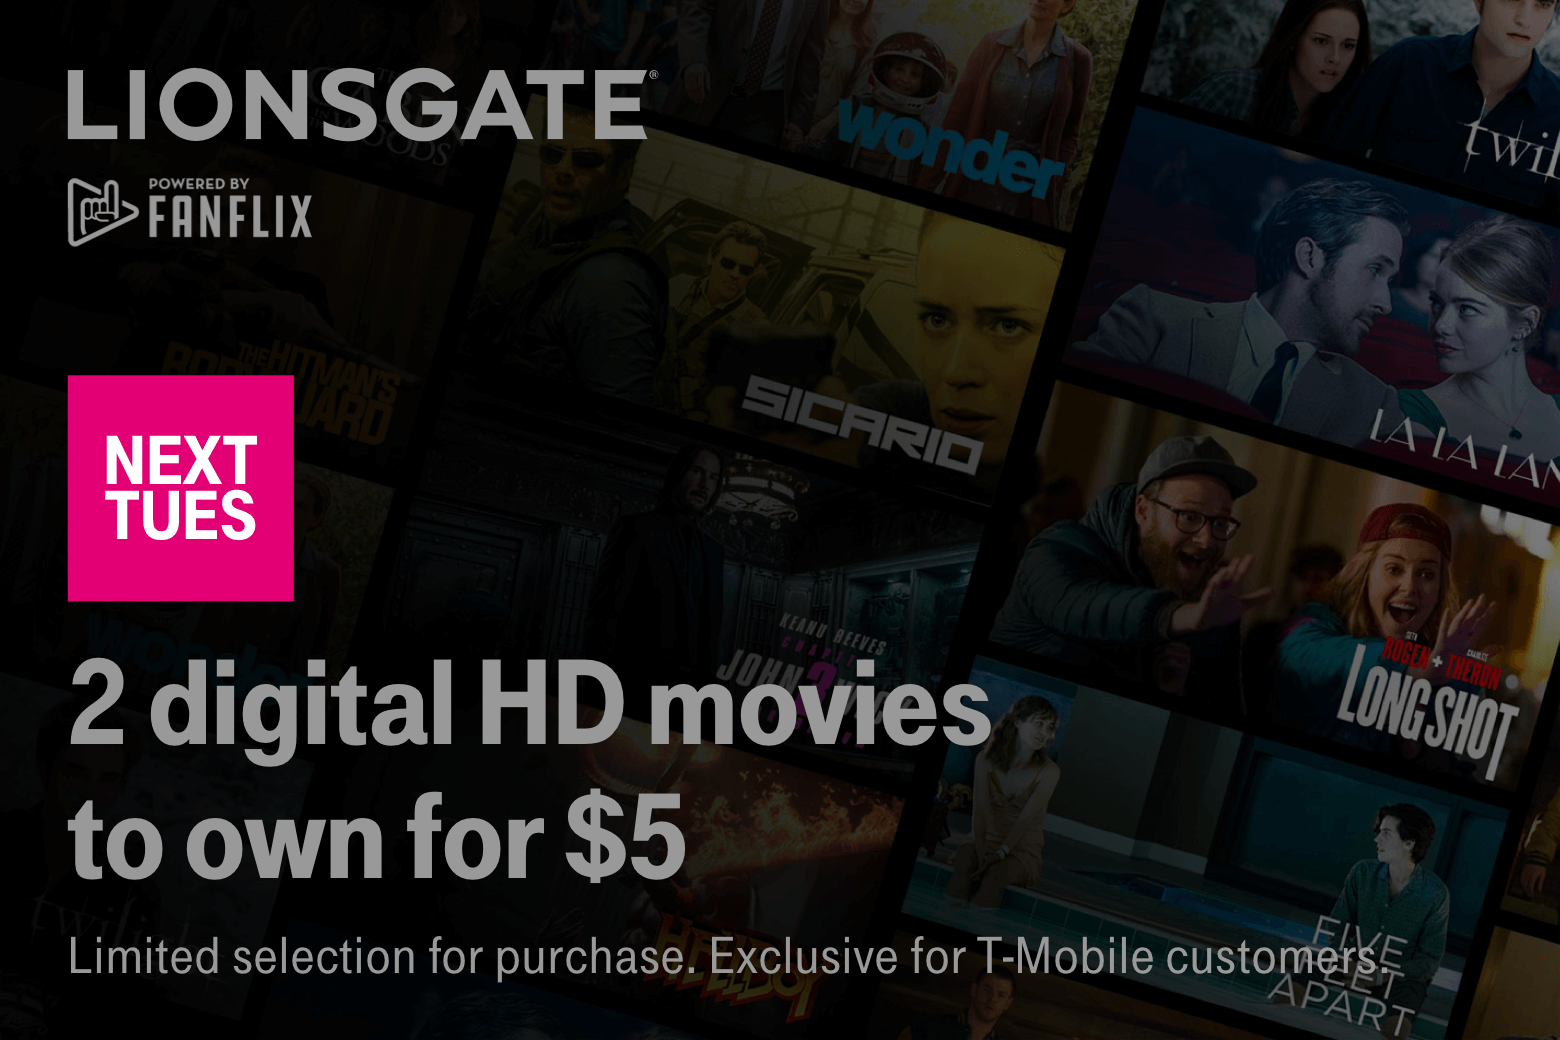 Lionsgate. Fanflix. Next Tuesday. 2 digital HD movies to own for $5. Limited selection for purchase. Exclusive for T-Mobile customers.